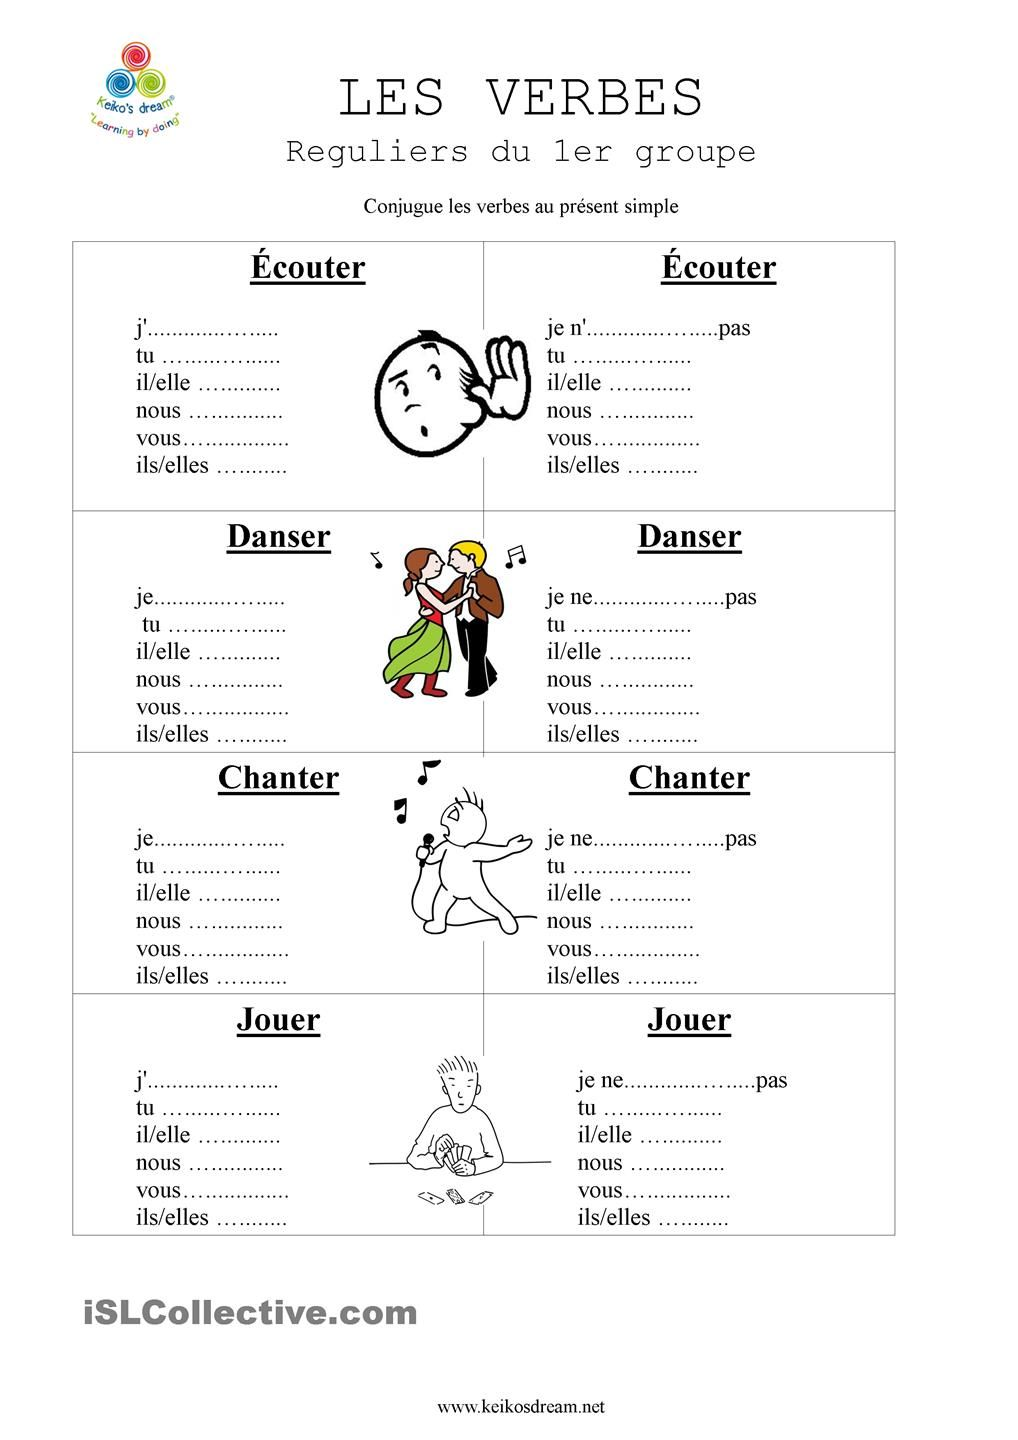 verbes reguliers du 1er premier groupe learning french french verbs and french worksheets. Black Bedroom Furniture Sets. Home Design Ideas